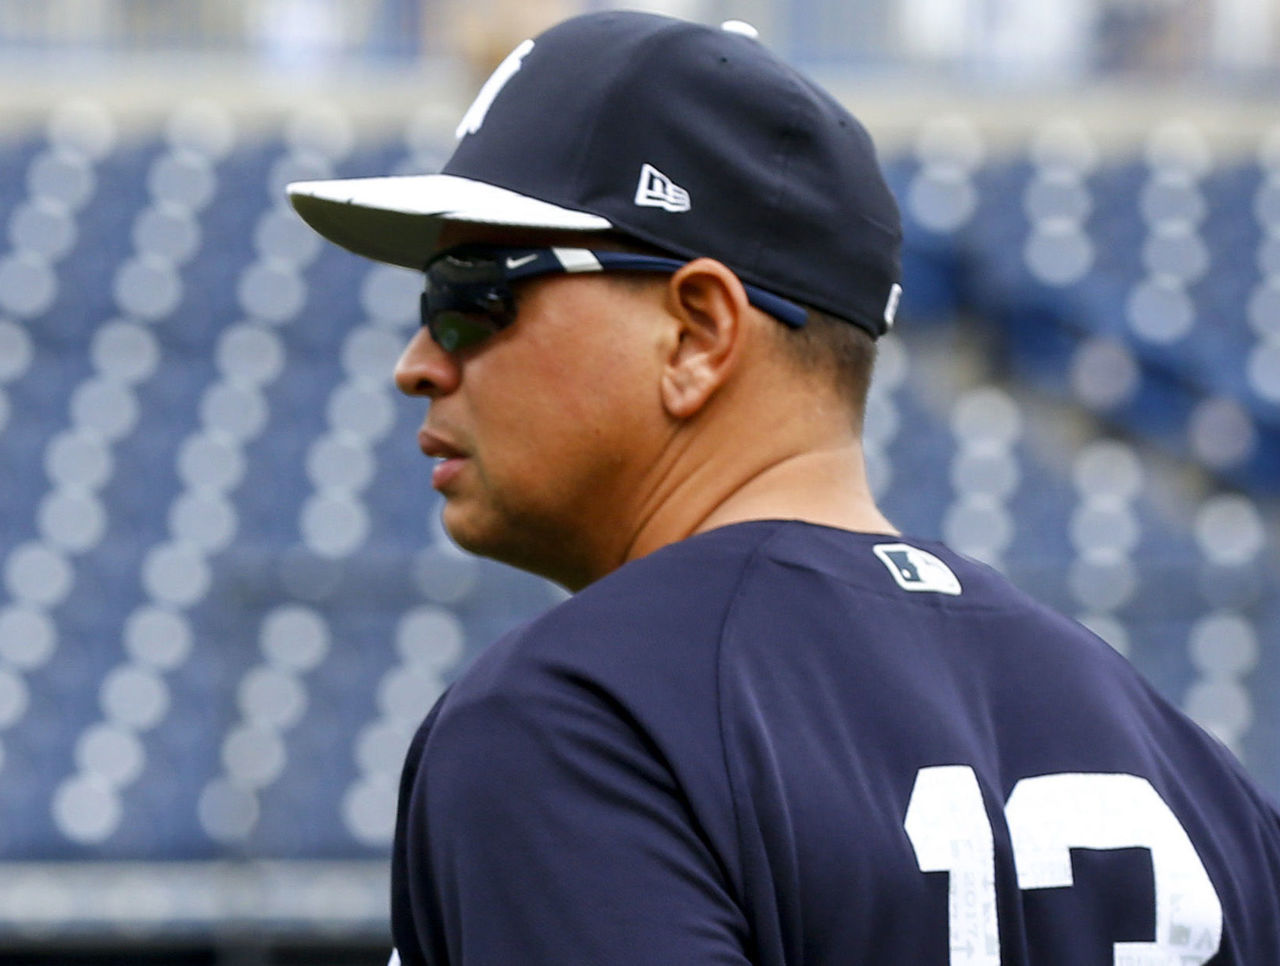 Cropped_2017-02-23t193210z_1832916299_nocid_rtrmadp_3_mlb-new-york-yankees-workouts